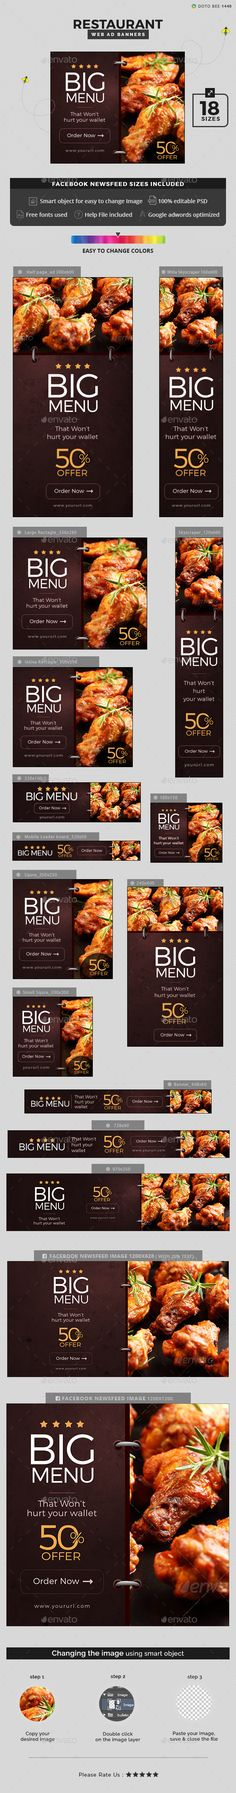 Restaurant Banners - Banners & Ads Web Template PSD. Download here: http://graphicriver.net/item/restaurant-banners/16360272?s_rank=26&ref=yinkira